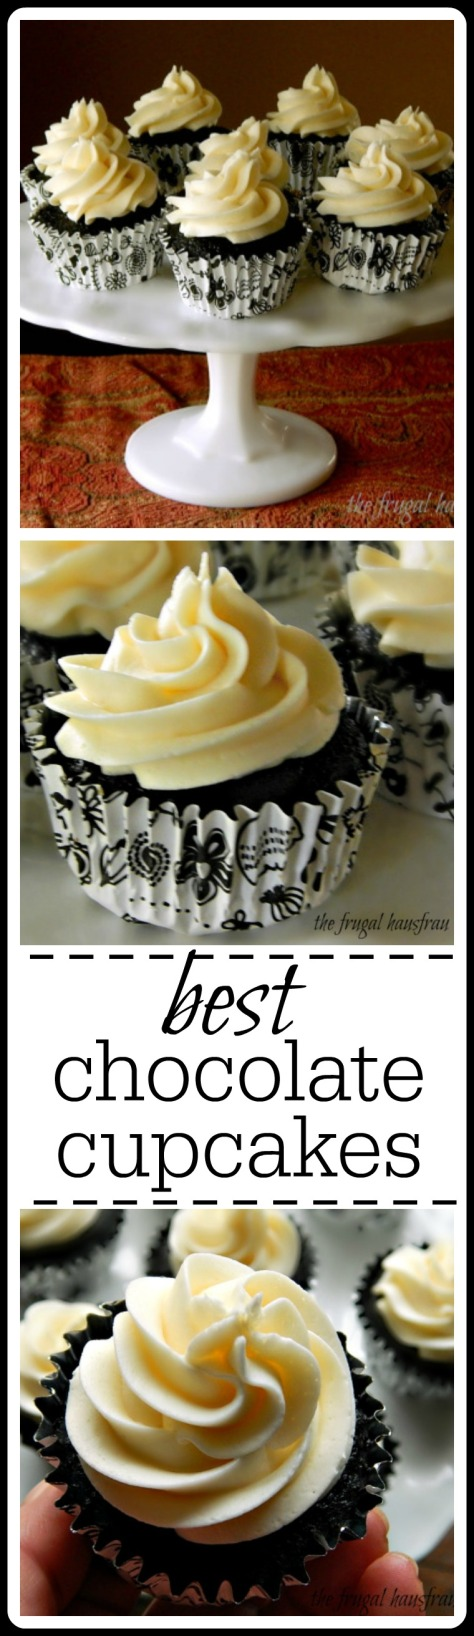 Best Chocolate Cupcakes: Very light, moist and tender cupcakes that pack a whollop of chocolate flavor.